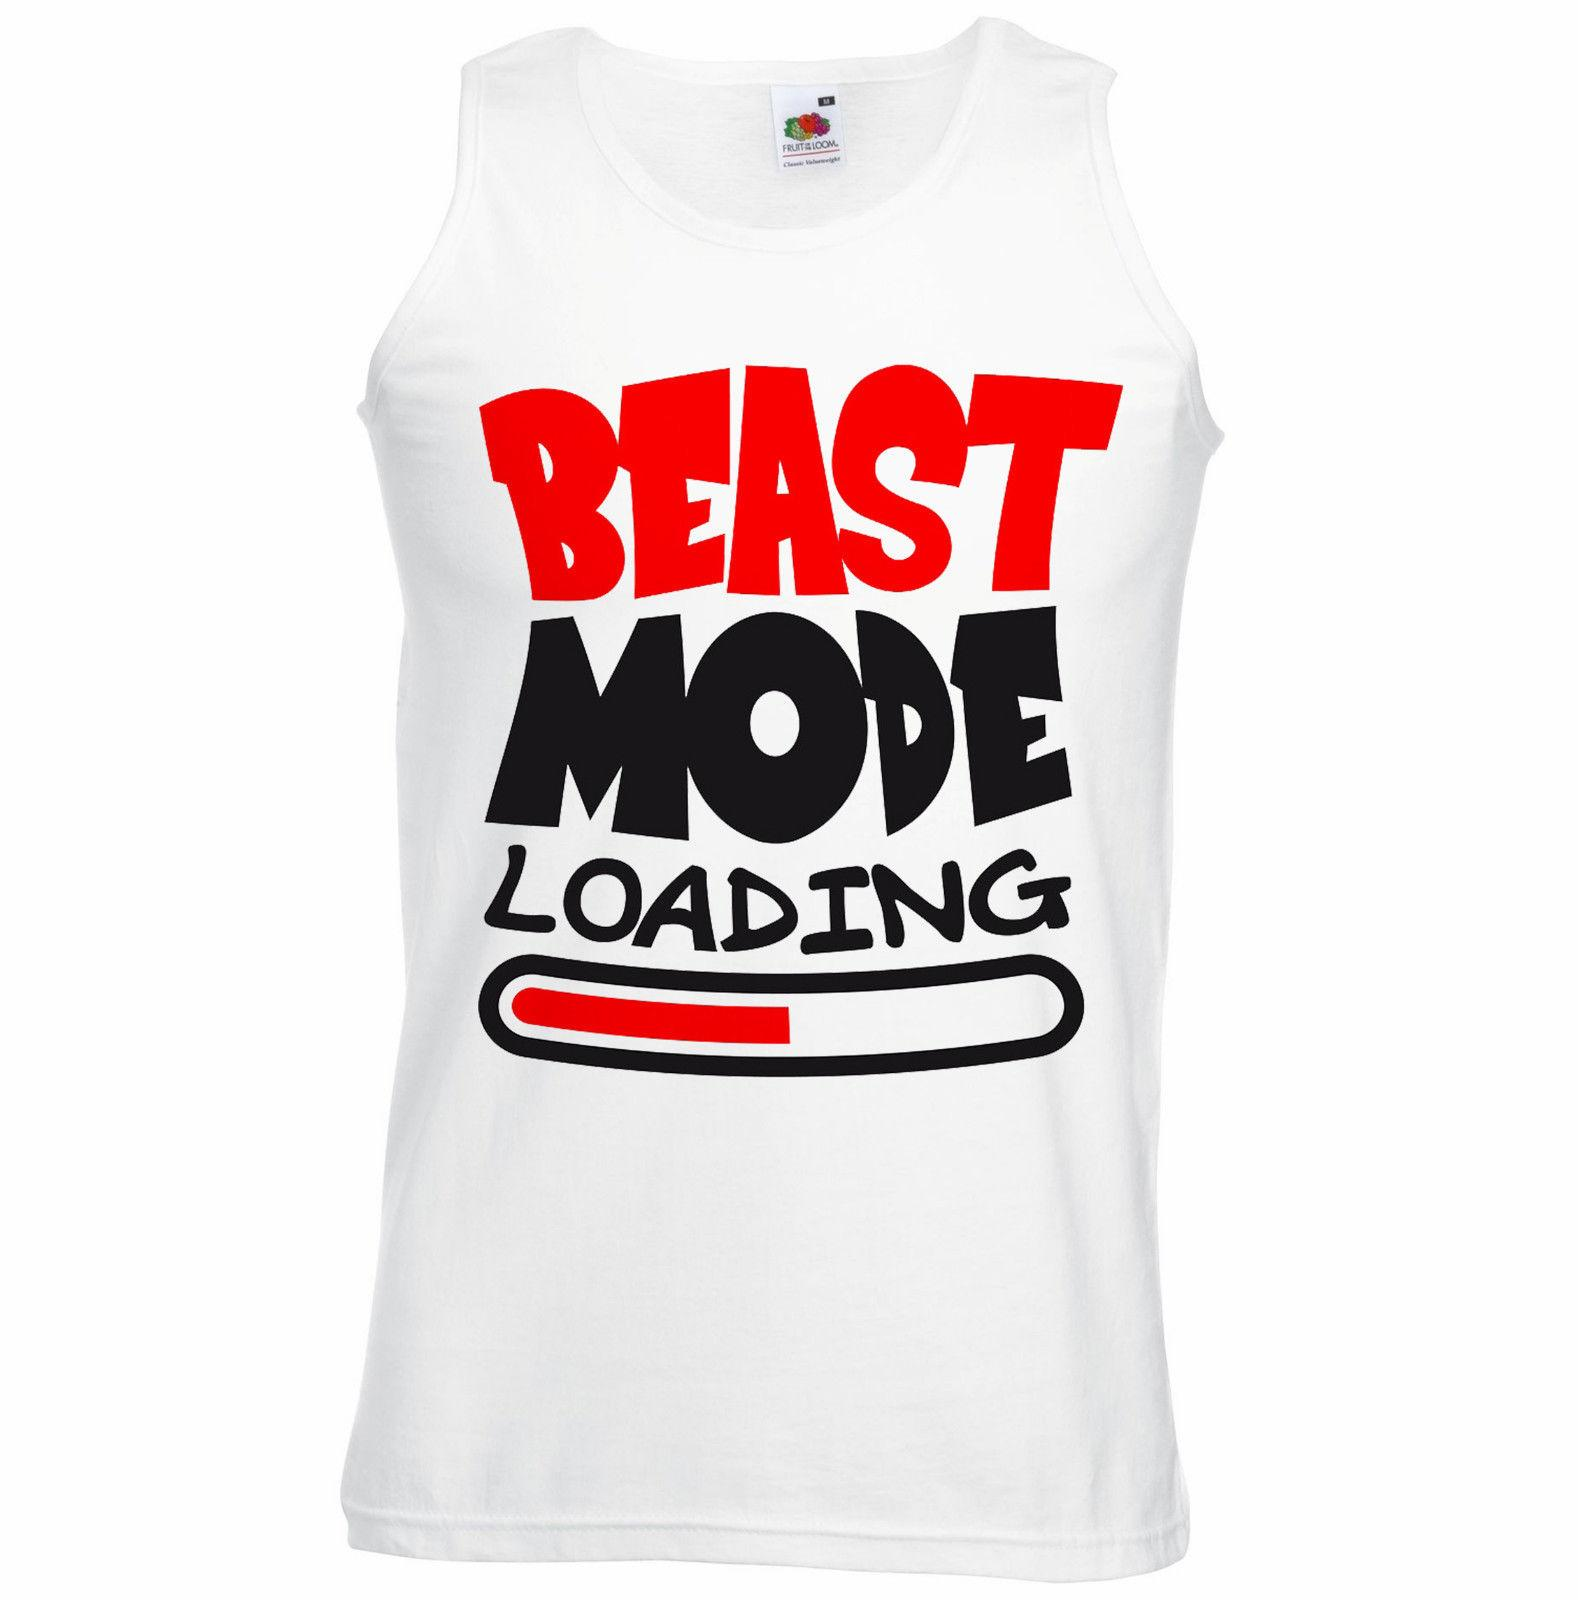 17cf4d1789bec Beast Mode Loading Tank Top Vest Muscles Bodybuilding Gym Fear Cosplay  Liverpoott Tshirt Worlds Funniest T Shirts Cool Tee Shirts Cheap From  Teecup